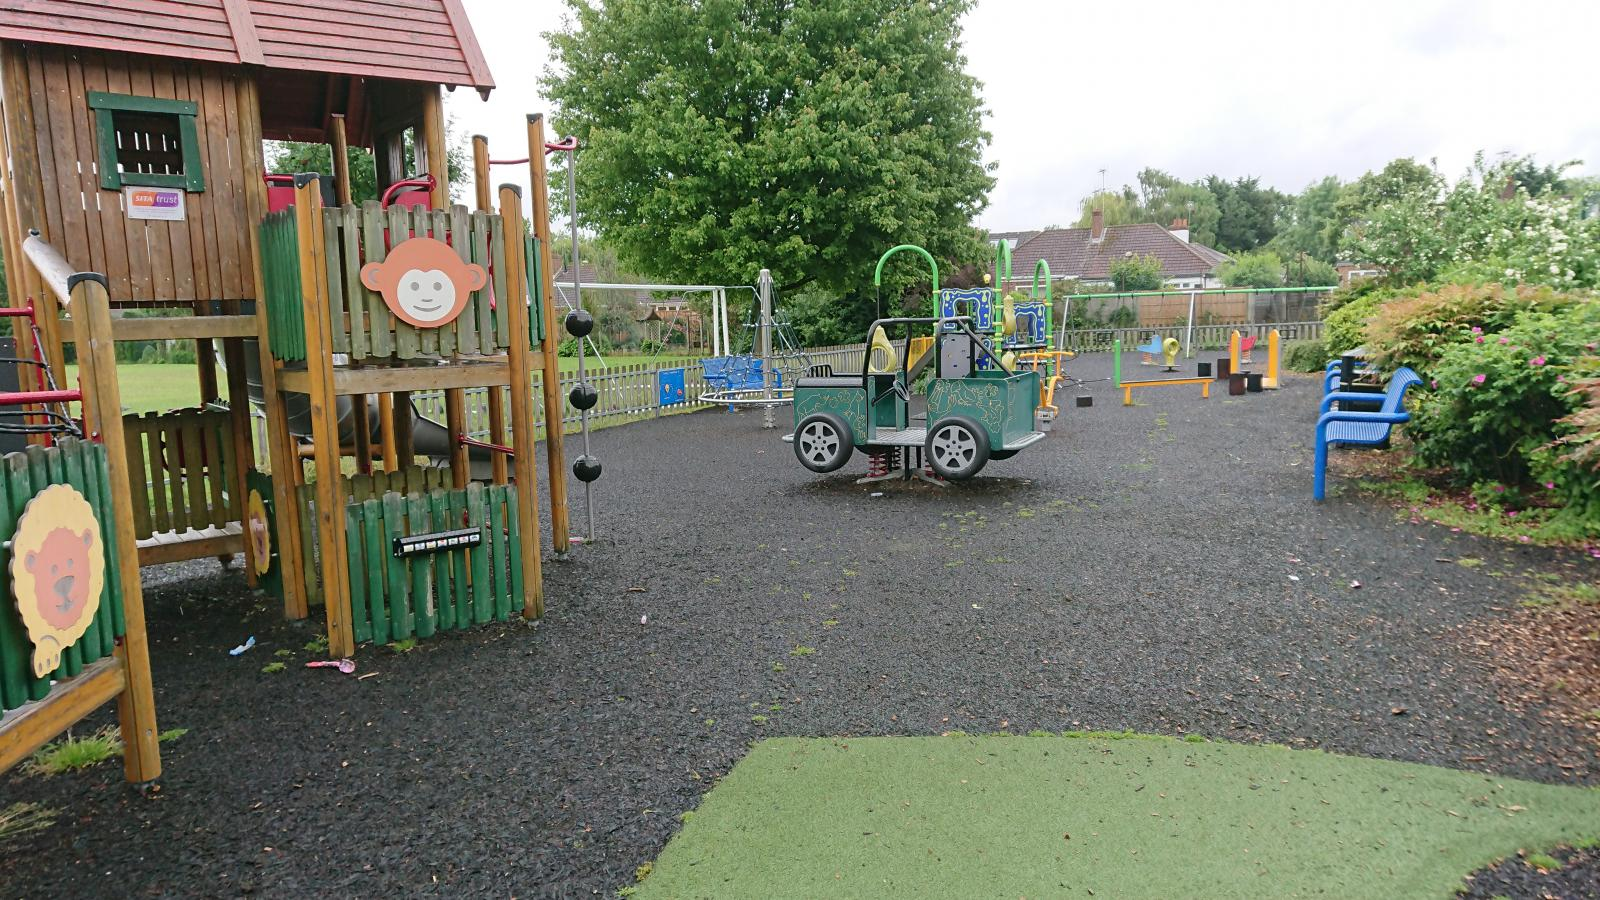 Priory street park play equipment